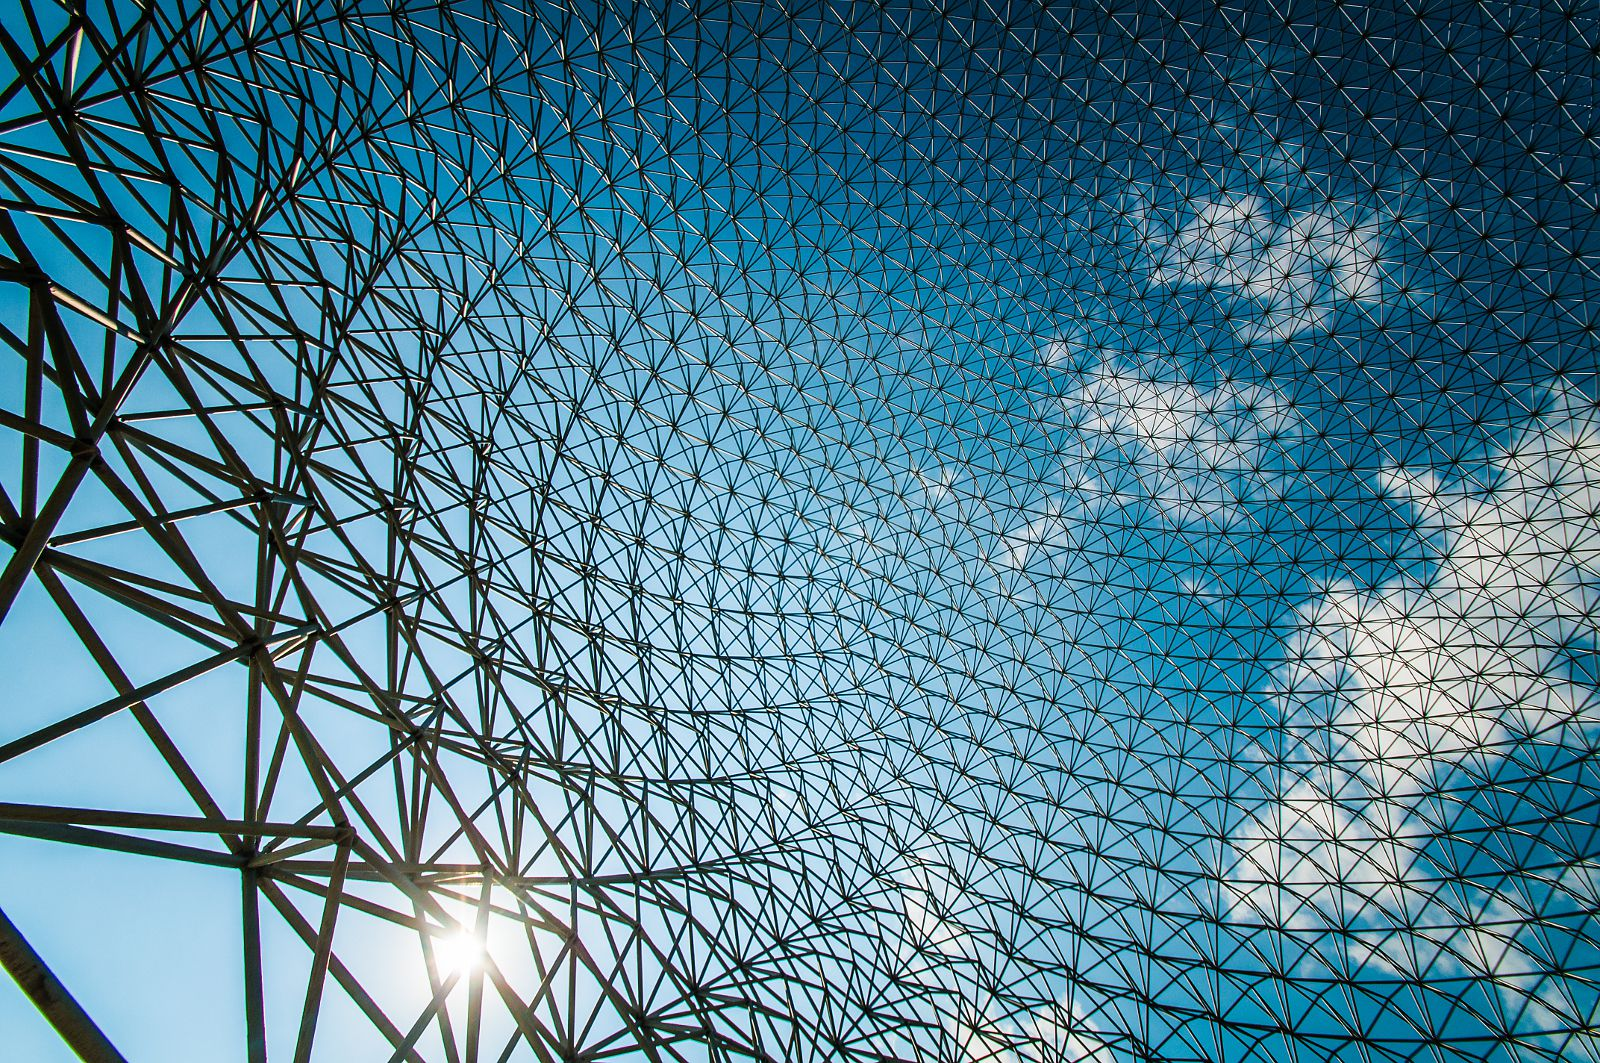 Usa Auto Insurance >> The Montreal Biosphere - Buckminster Fuller's Geodesic Dome